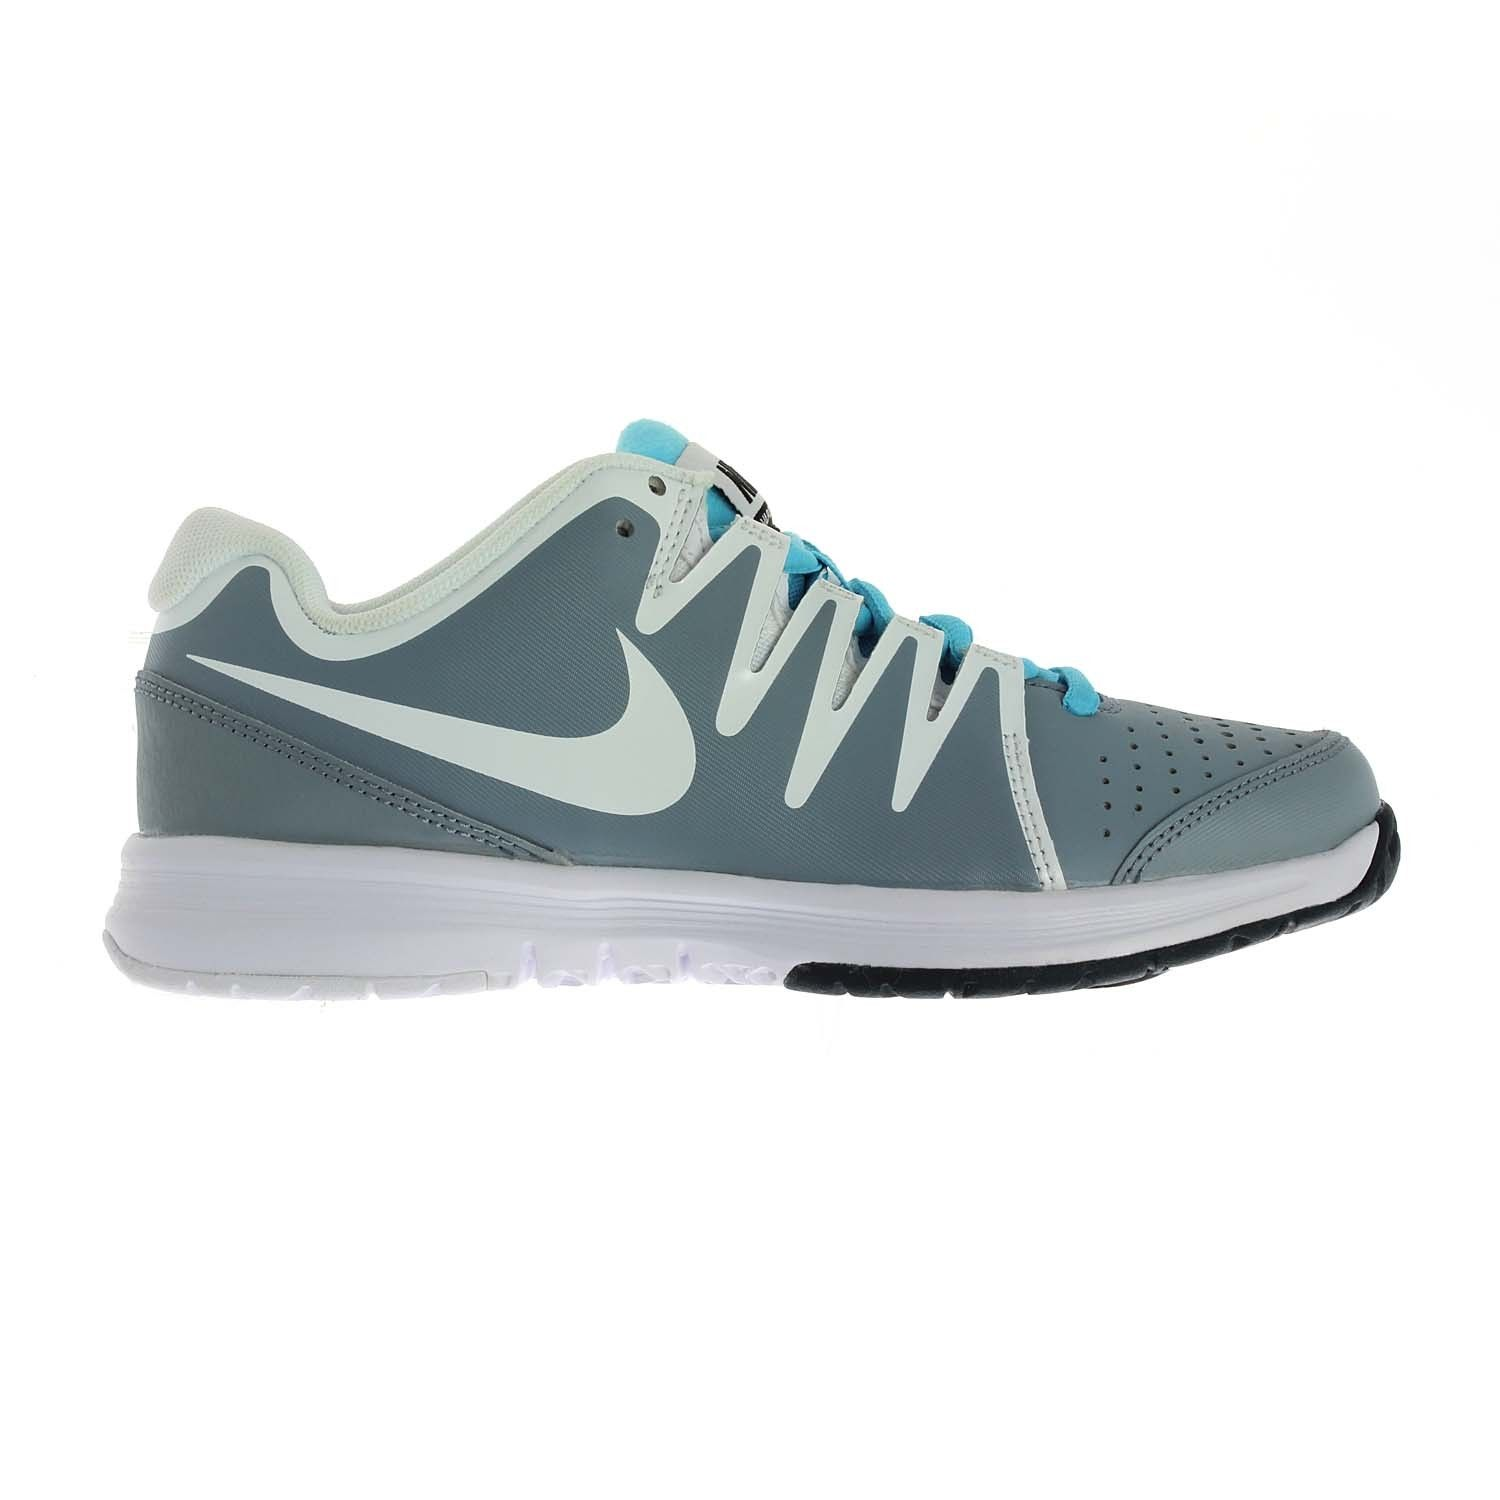 The Nike Vapor Court Tennis Shoe has Dynamic Fit technology for a securefit  with a locked-down feel.- Dynamic Fit system wraps the midfoot and a